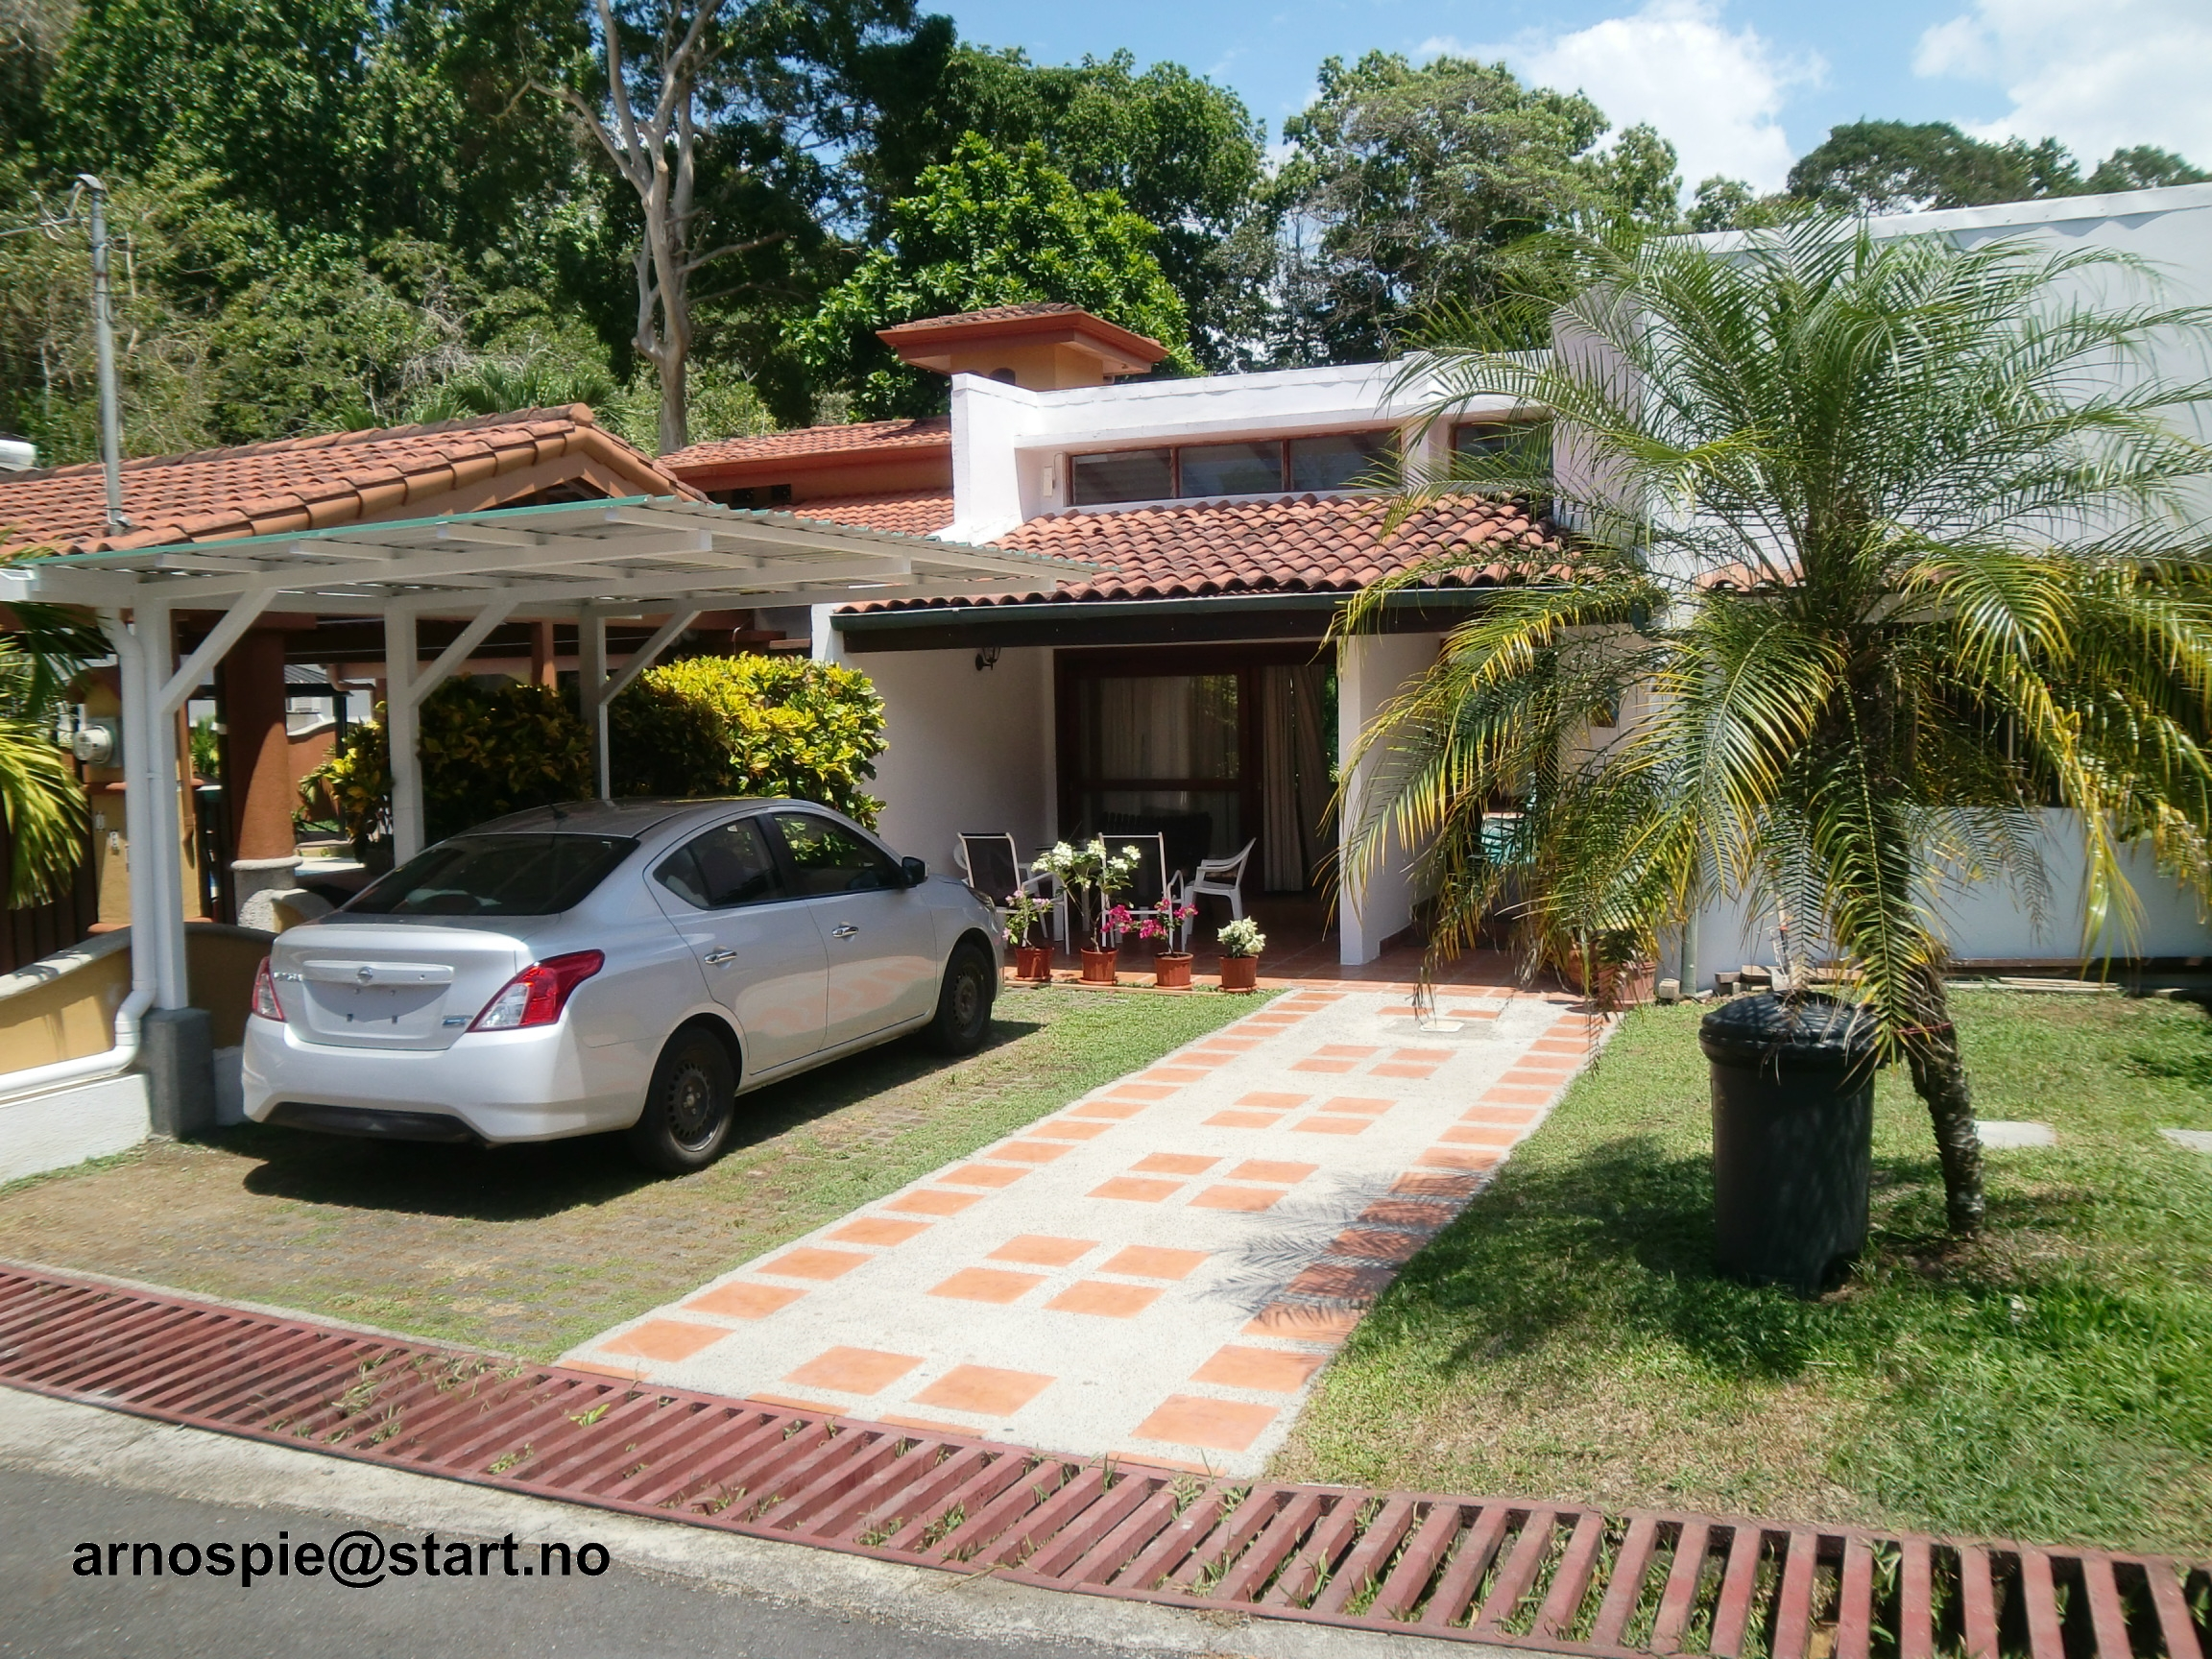 Vacation beach house with swimming pool in Punta Leona Resort, Costa Rica